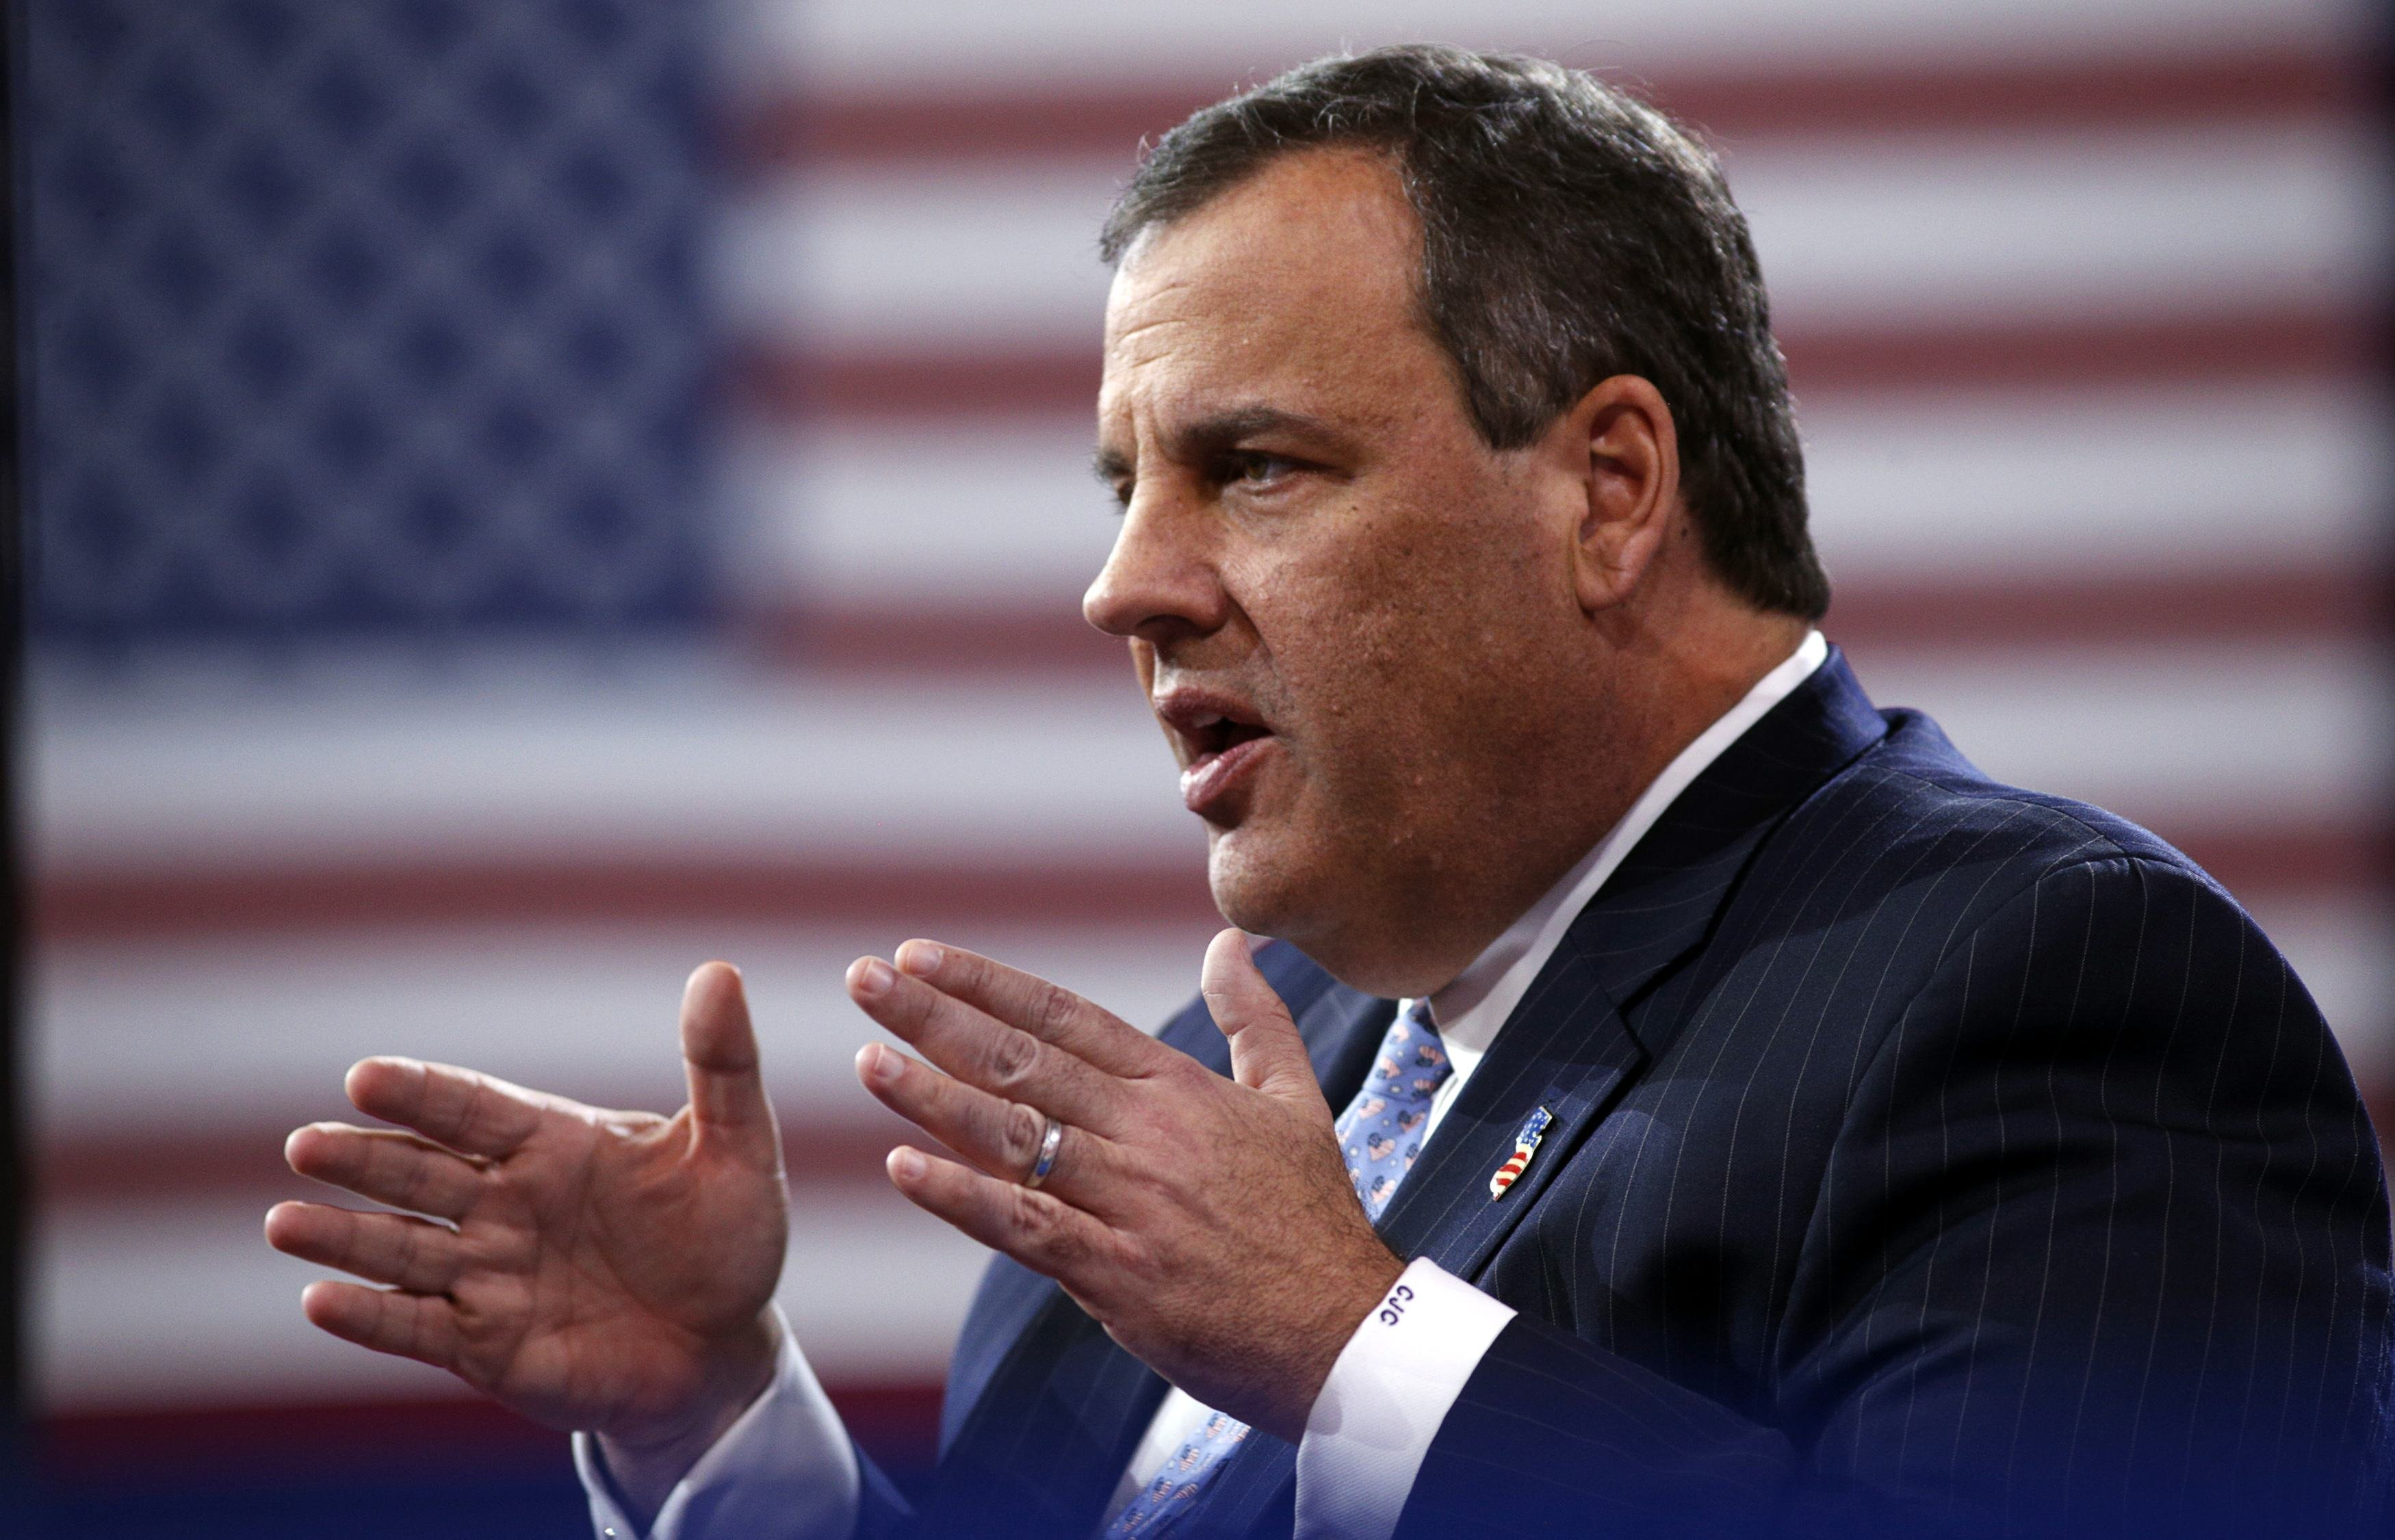 New Jersey Governor Christie speaks while being interviewed onstage at the Conservative Political Action Conference (CPAC) at National Harbor in Maryland